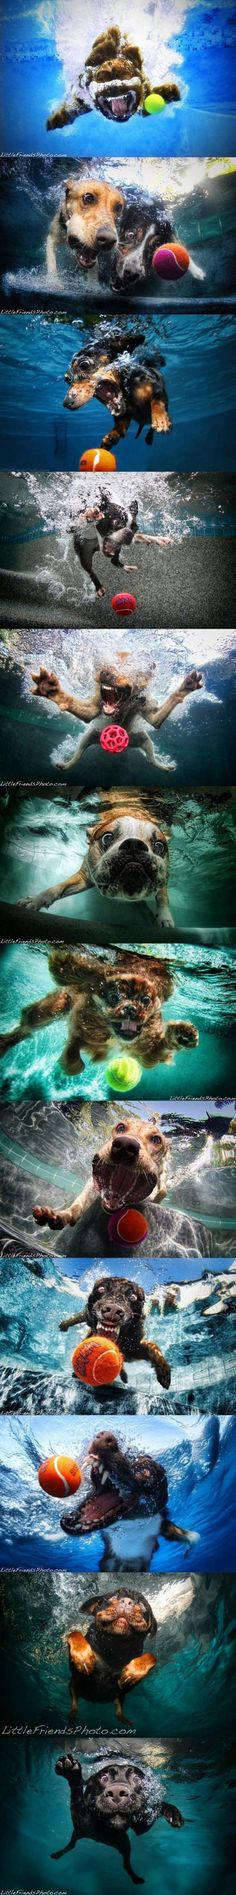 dogs diving for tennis balls. hahaha!